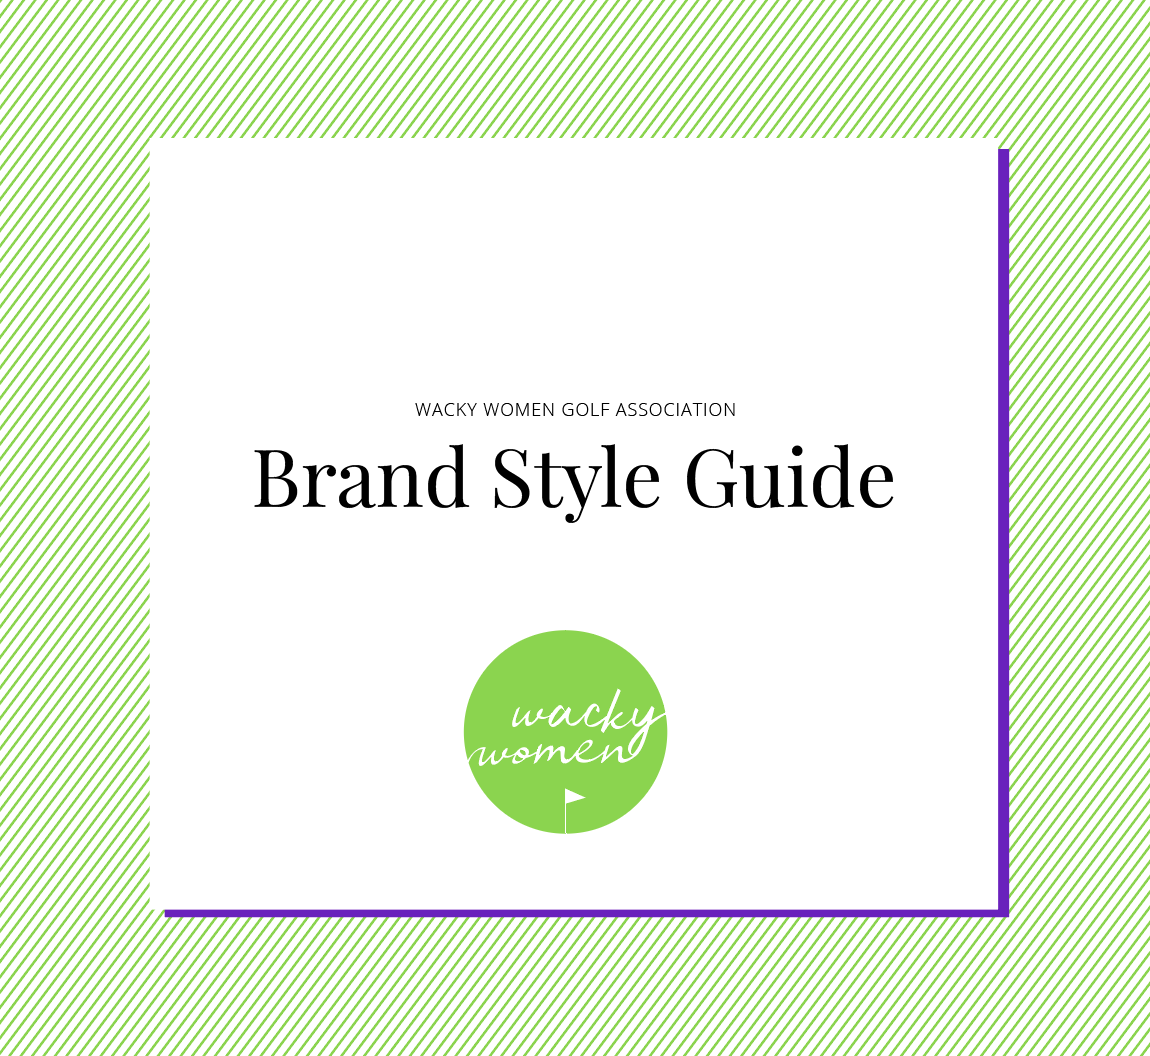 brand-style-guide-b